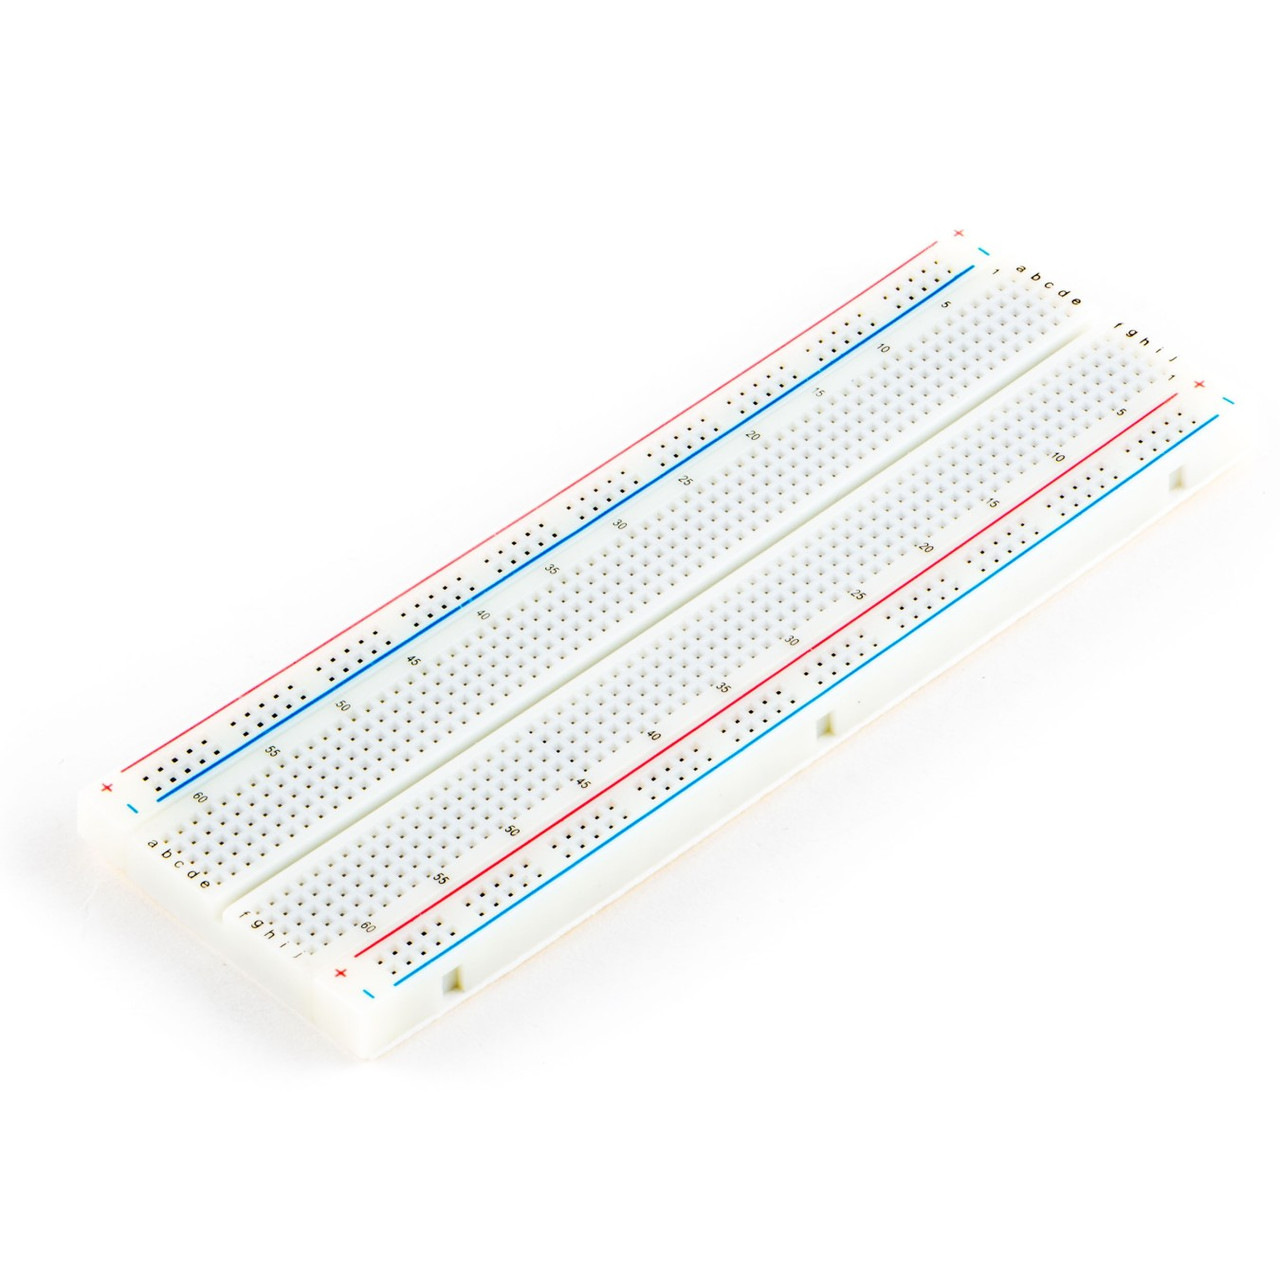 Breadboard - 830-Point Solderless Plug-in